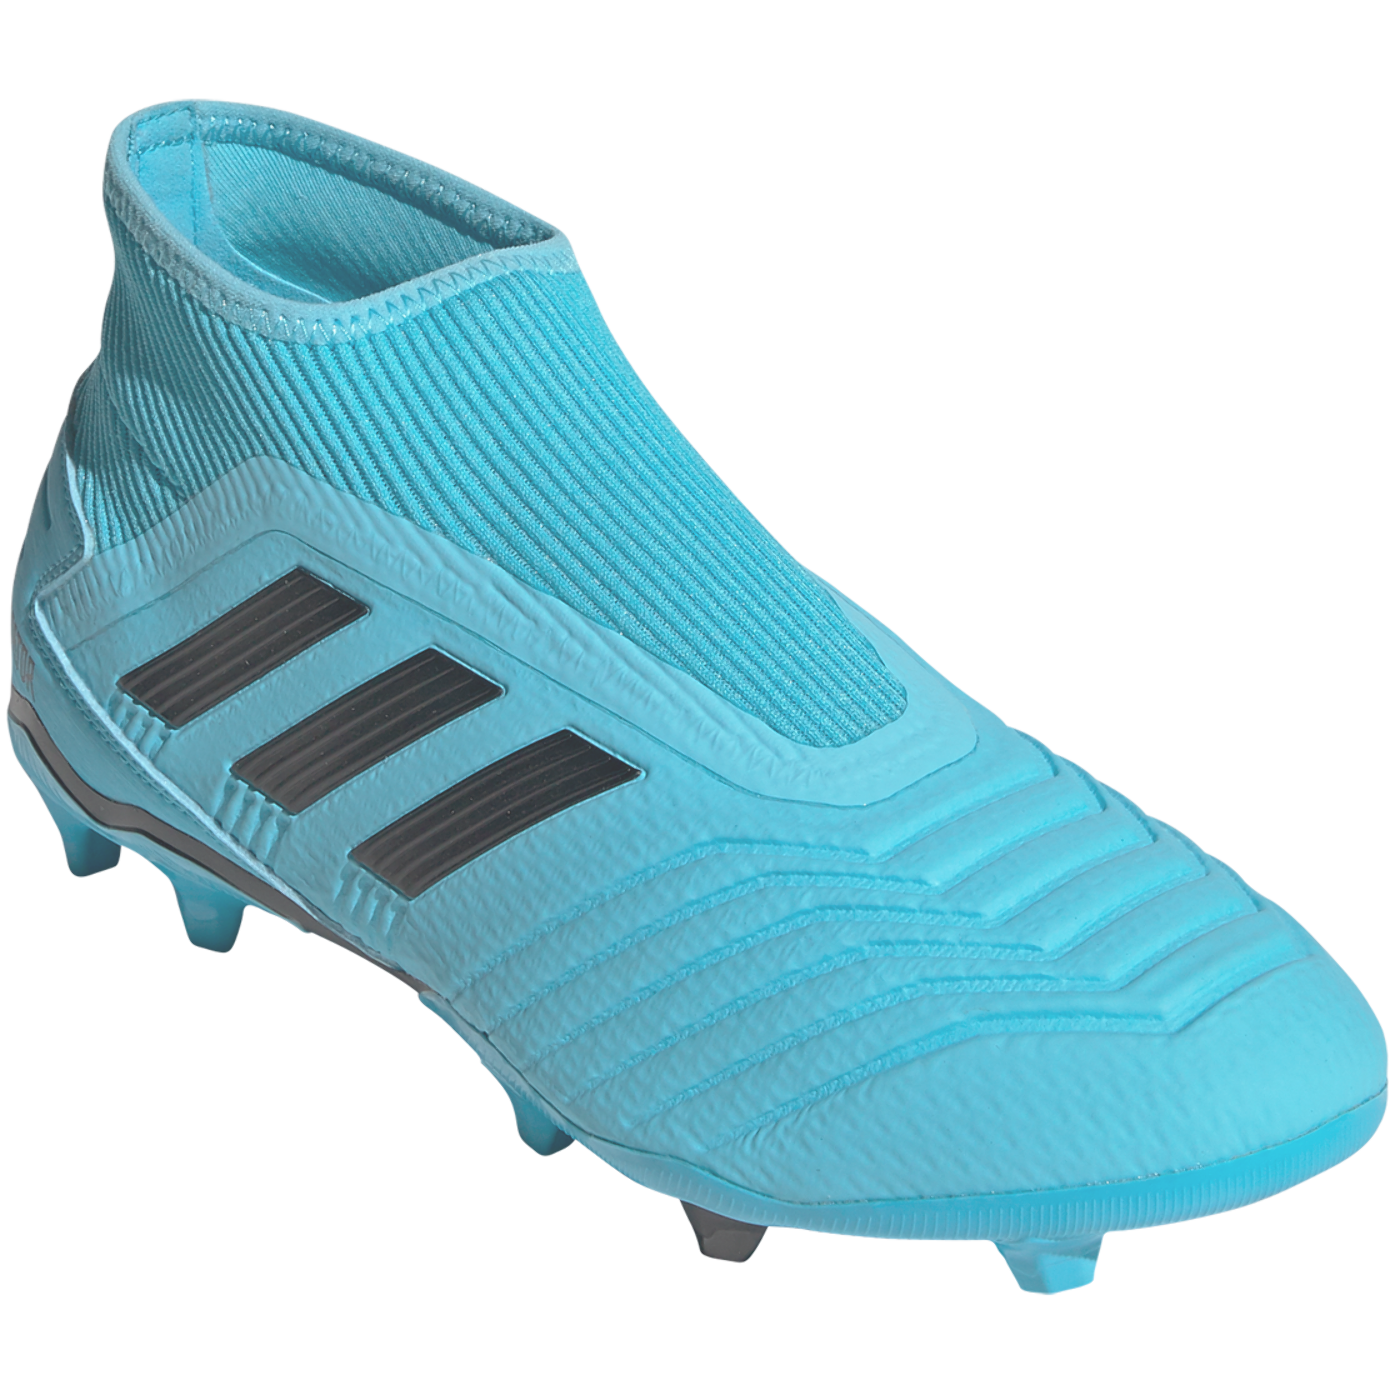 Adidas Predator 19 3 Laceless Fg Soccer Cleat Cyan Black Solar Yellow 9 Adidas Predator Cleats Soccer Cleats